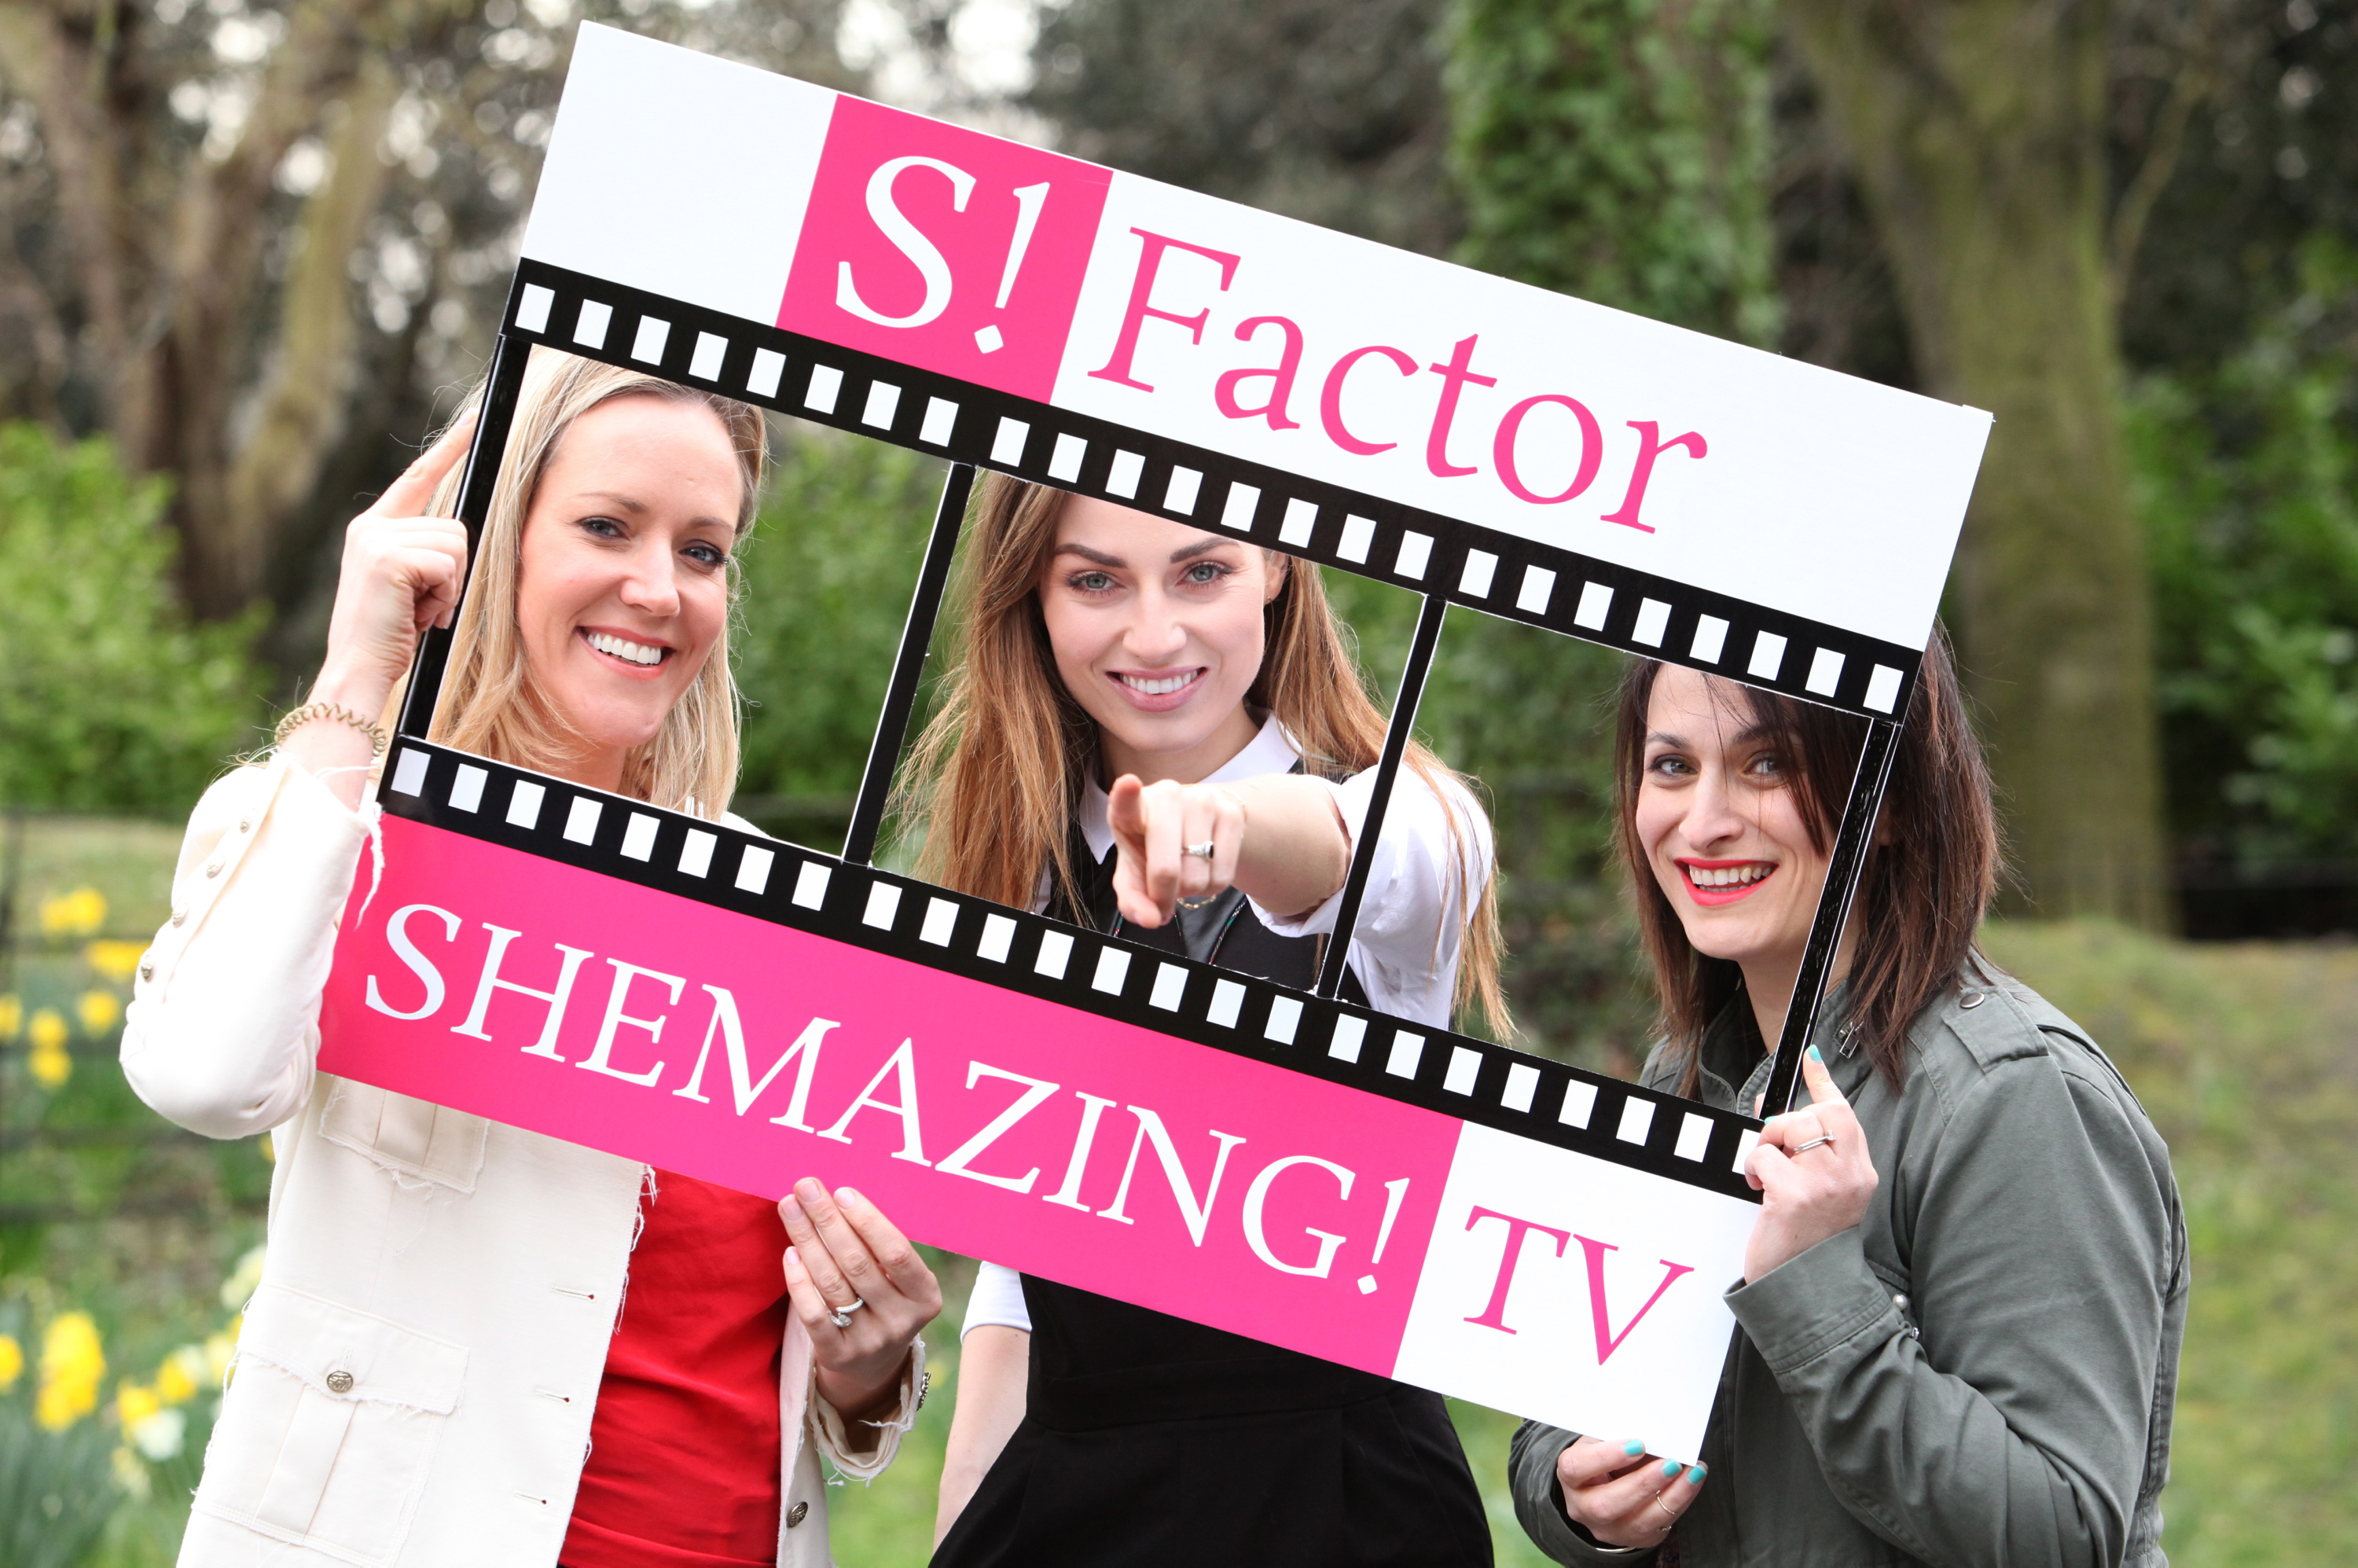 Launch of SHEmazing!TV S!Factor competition